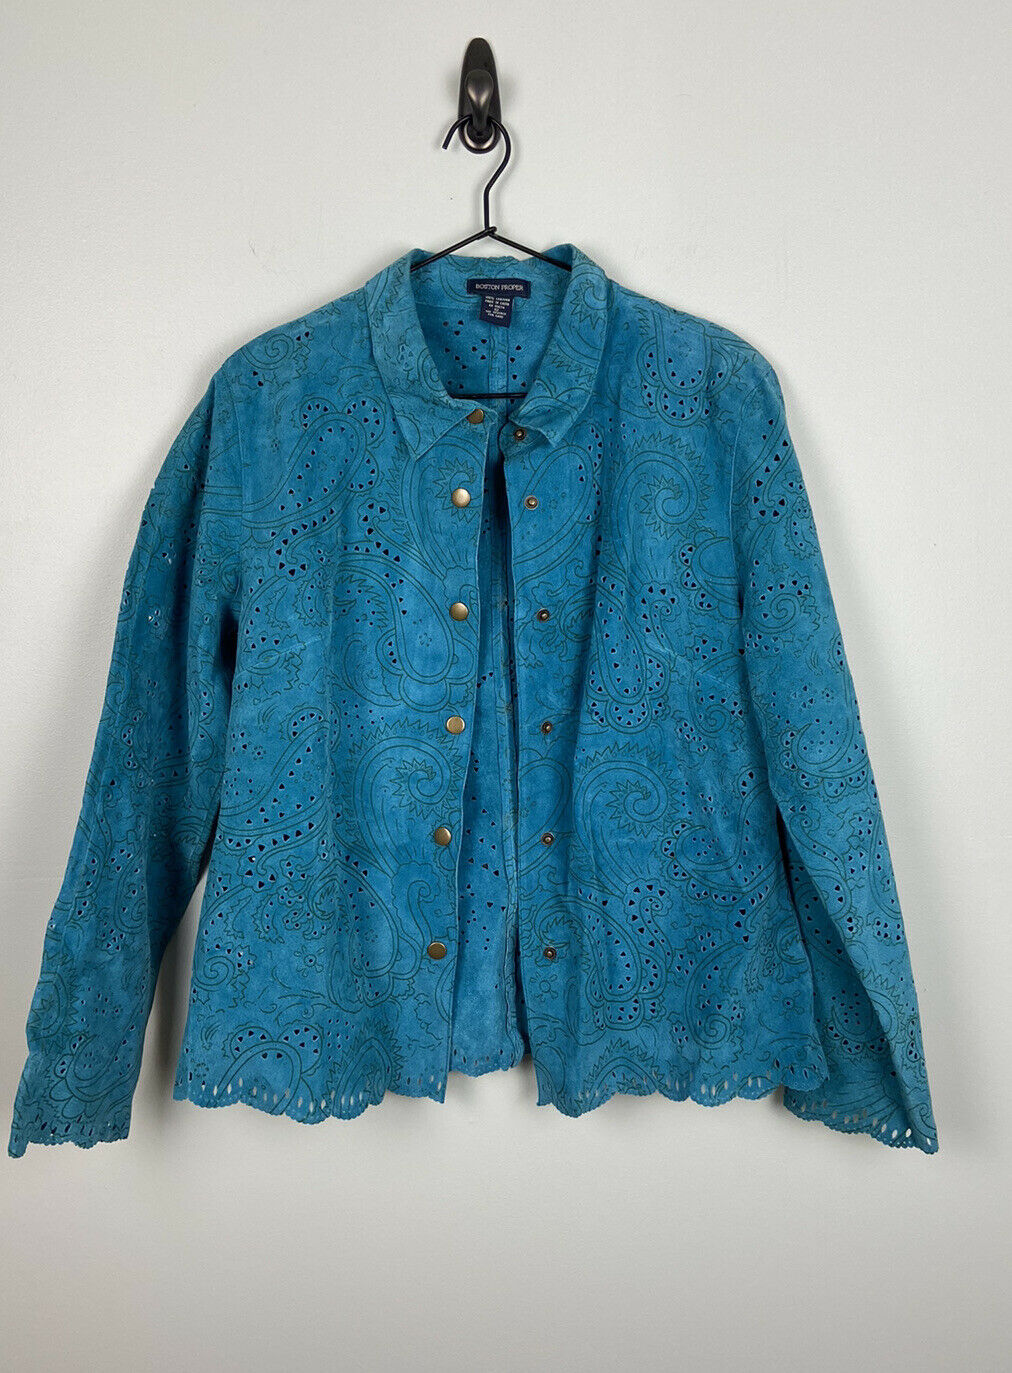 Boston Proper, Vintage Turquoise leather jacket with scallop trim, size 12